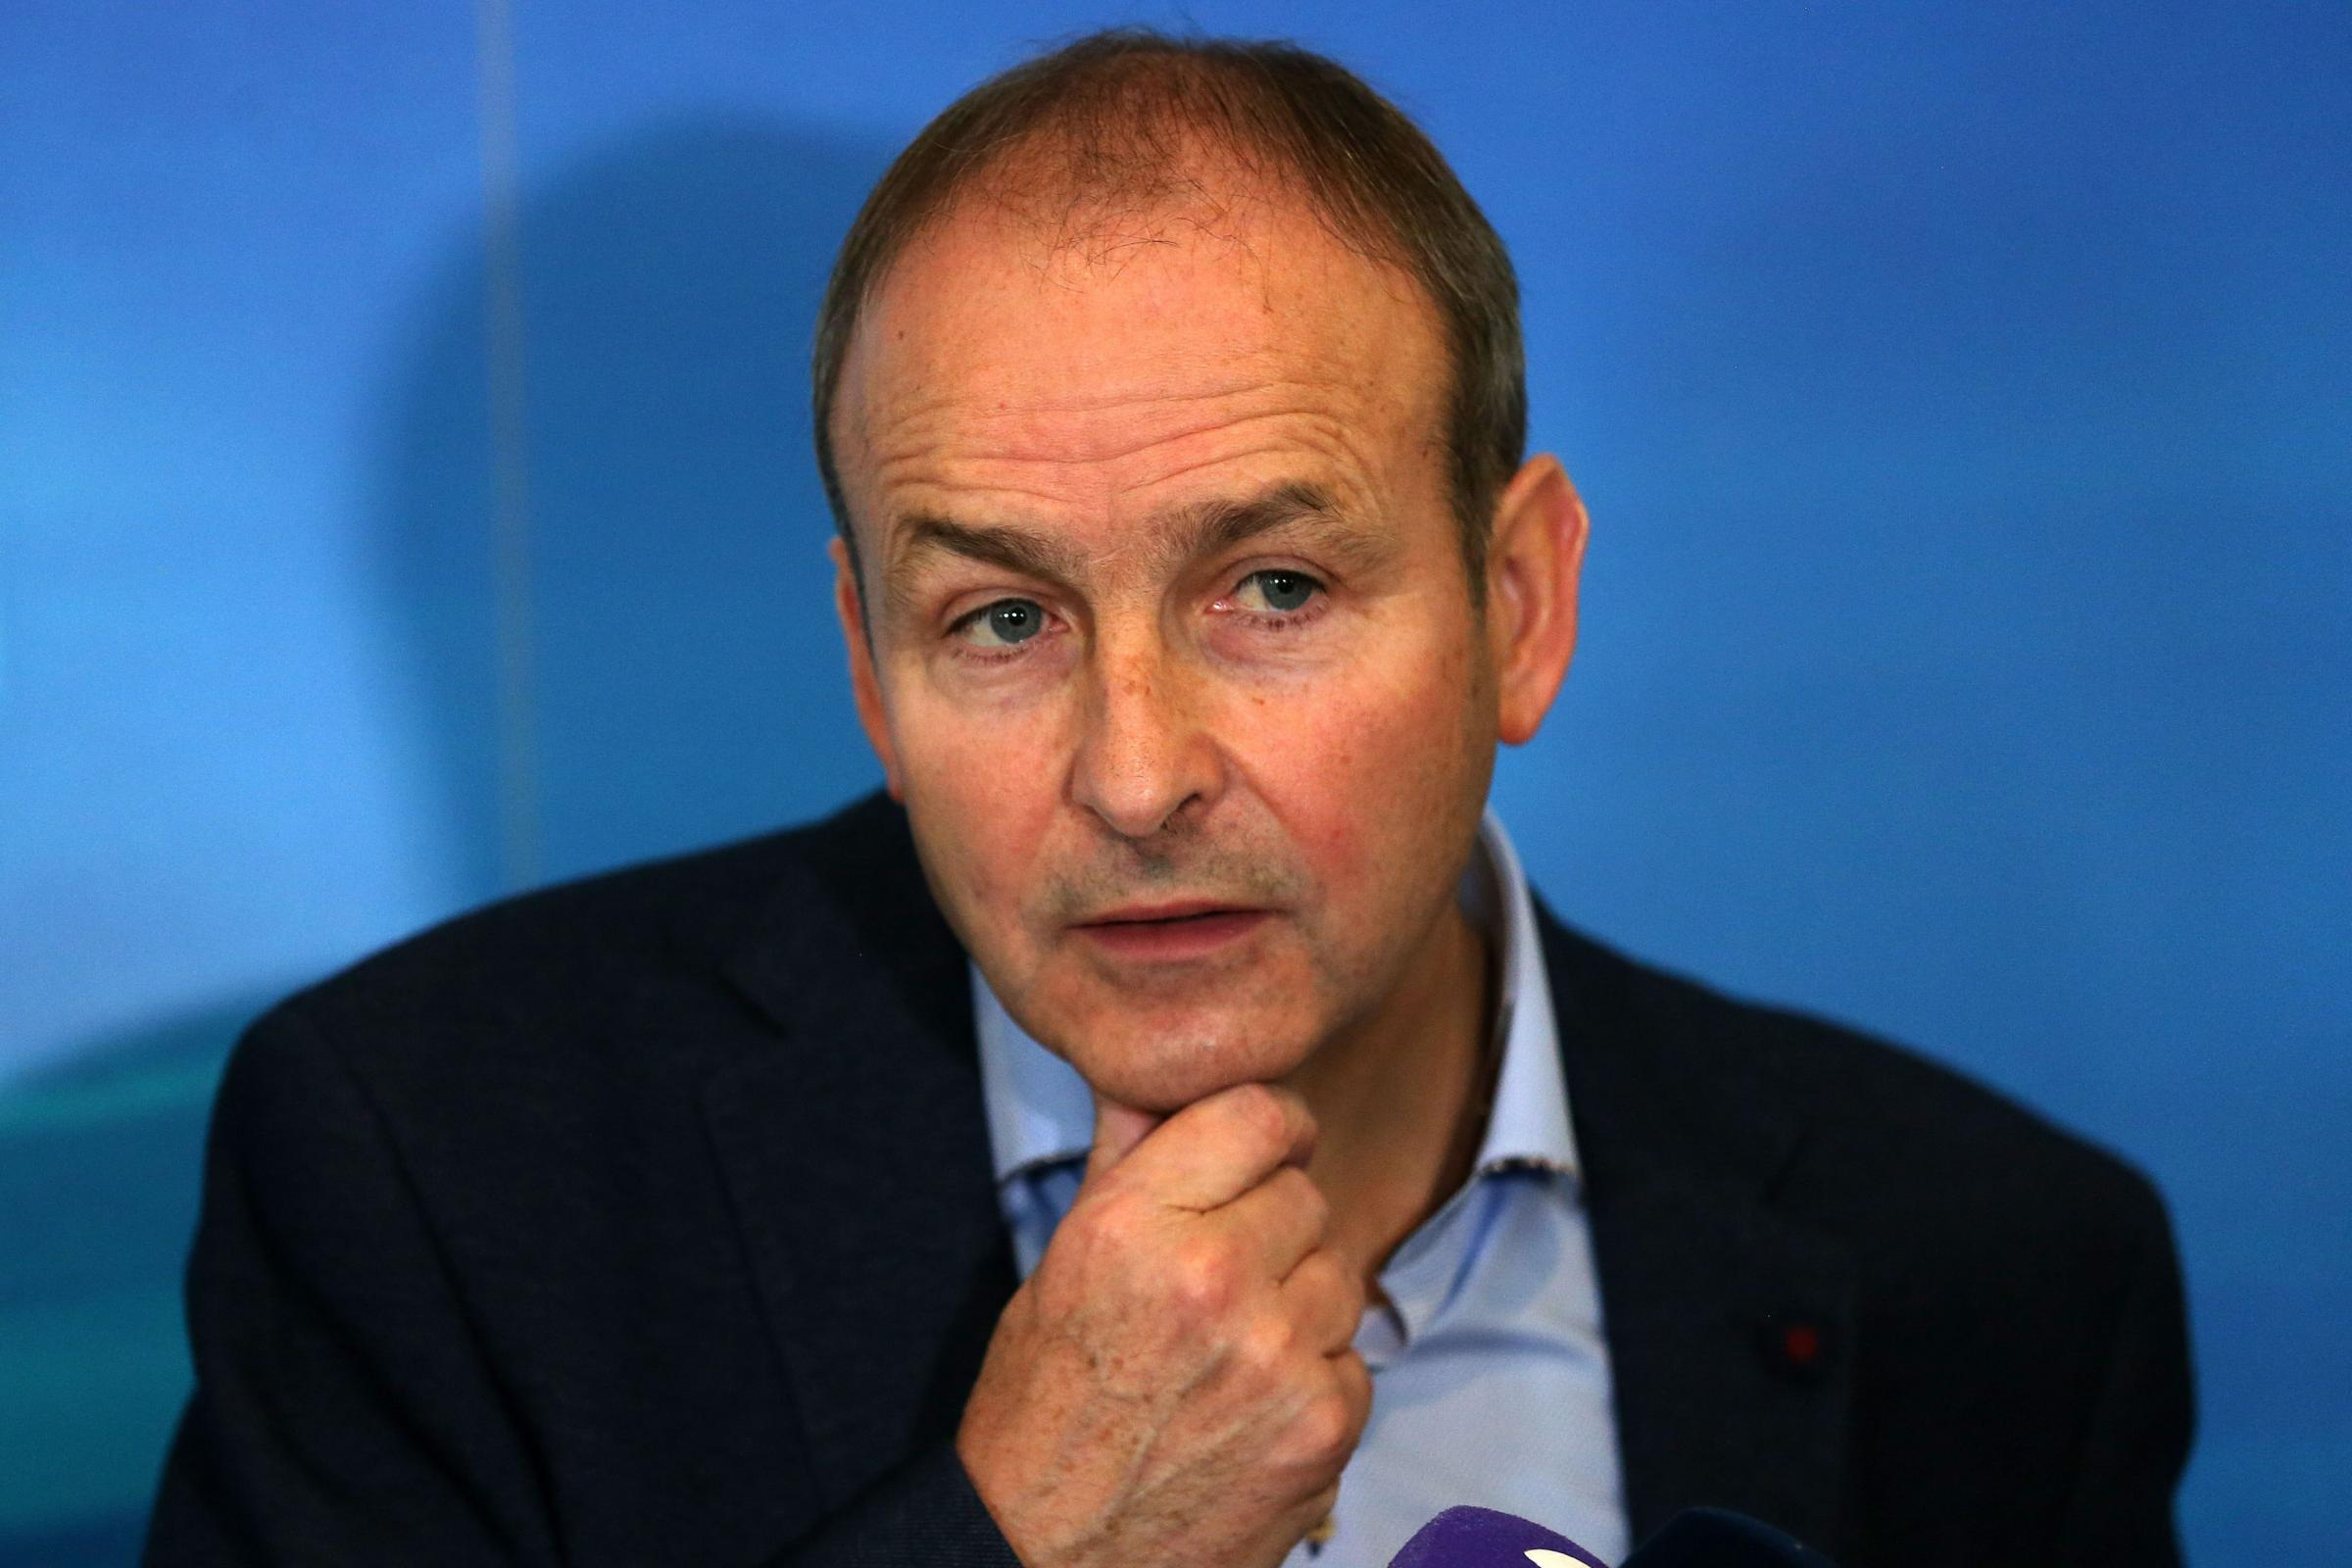 Irish opposition leader 'dismayed' by DUP response to Brexit proposal